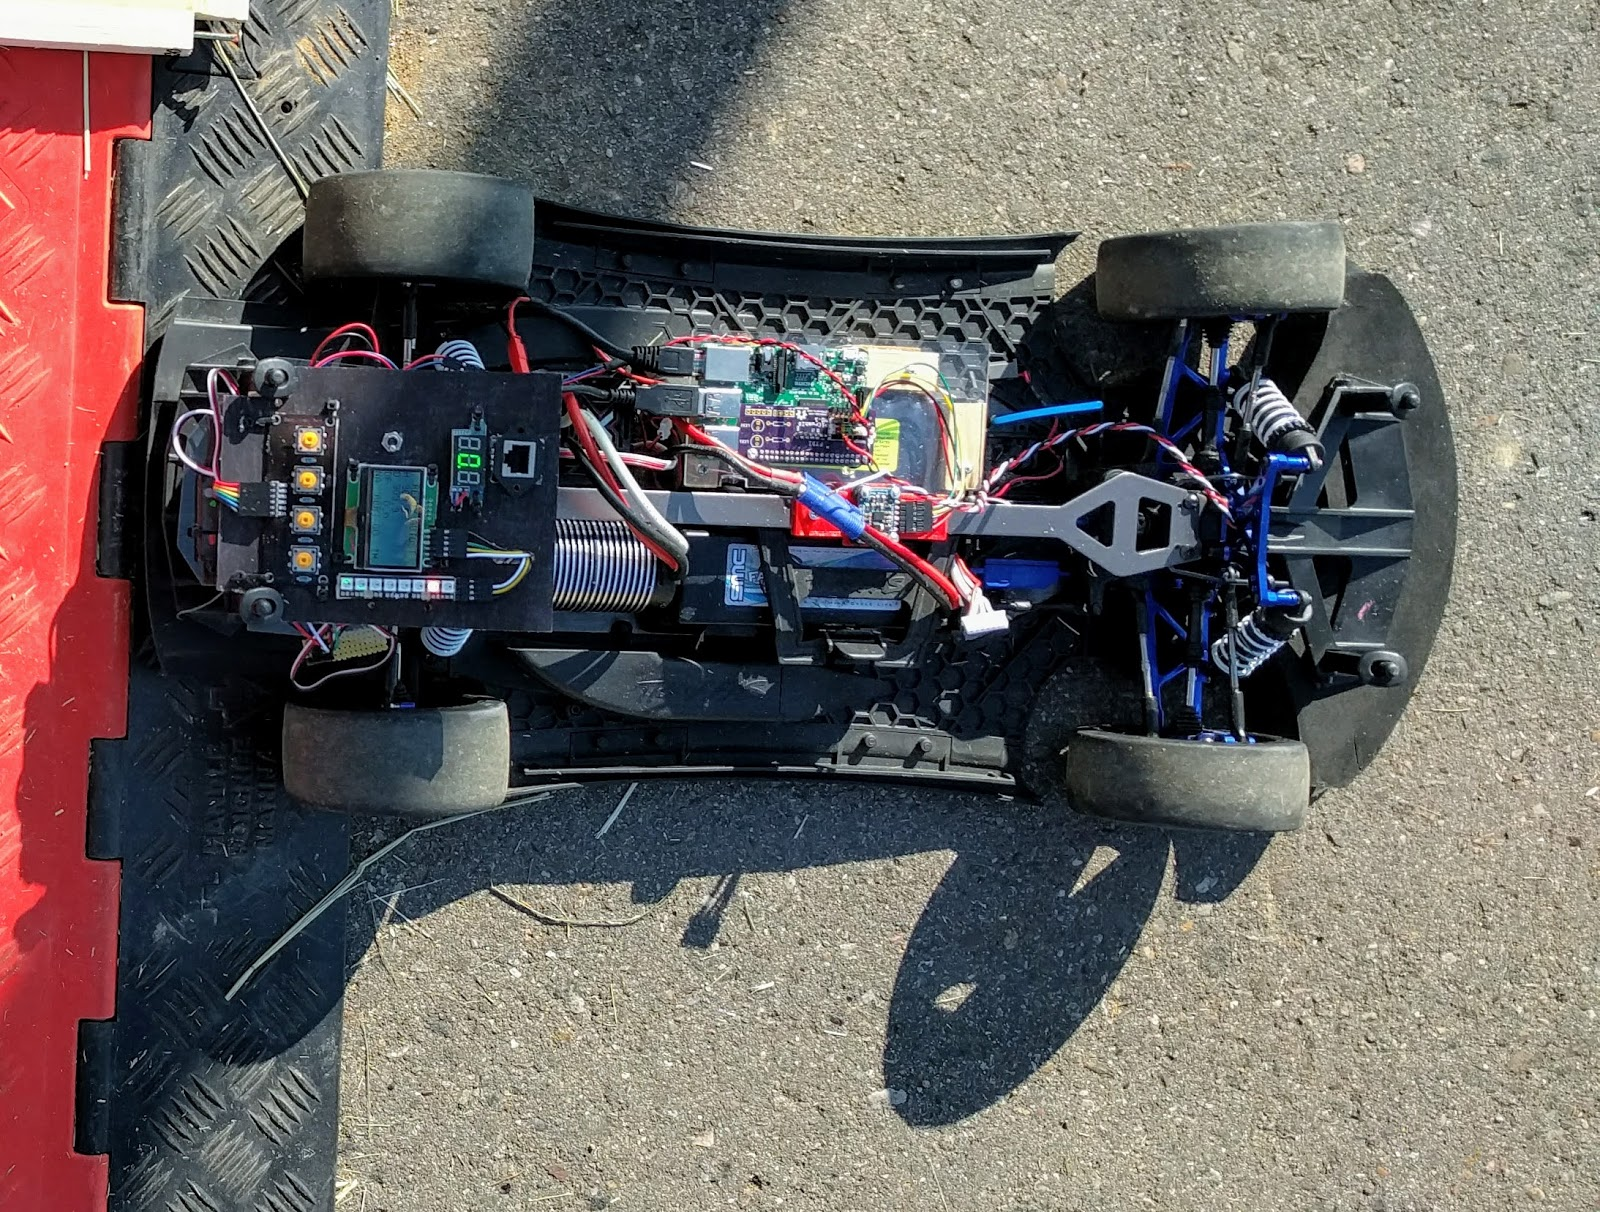 From the Field: The AVC Renaissance Man - News - SparkFun